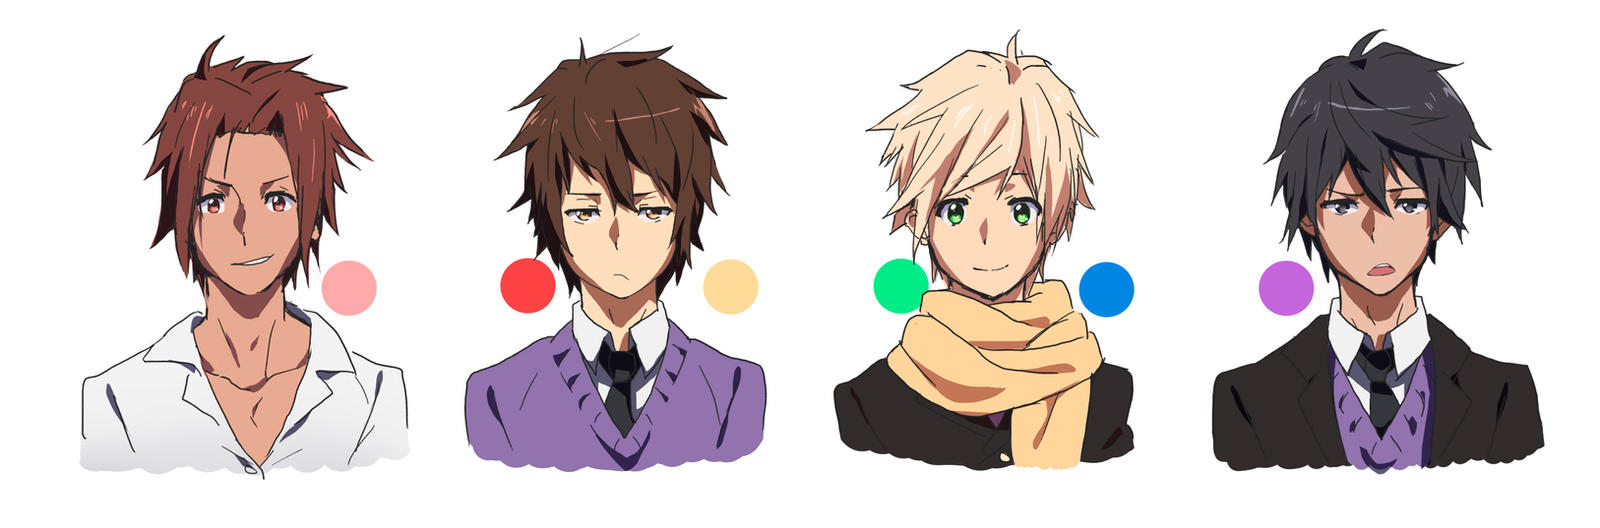 Anime Character Design Generator : Anime character creator male version myideasbedroom